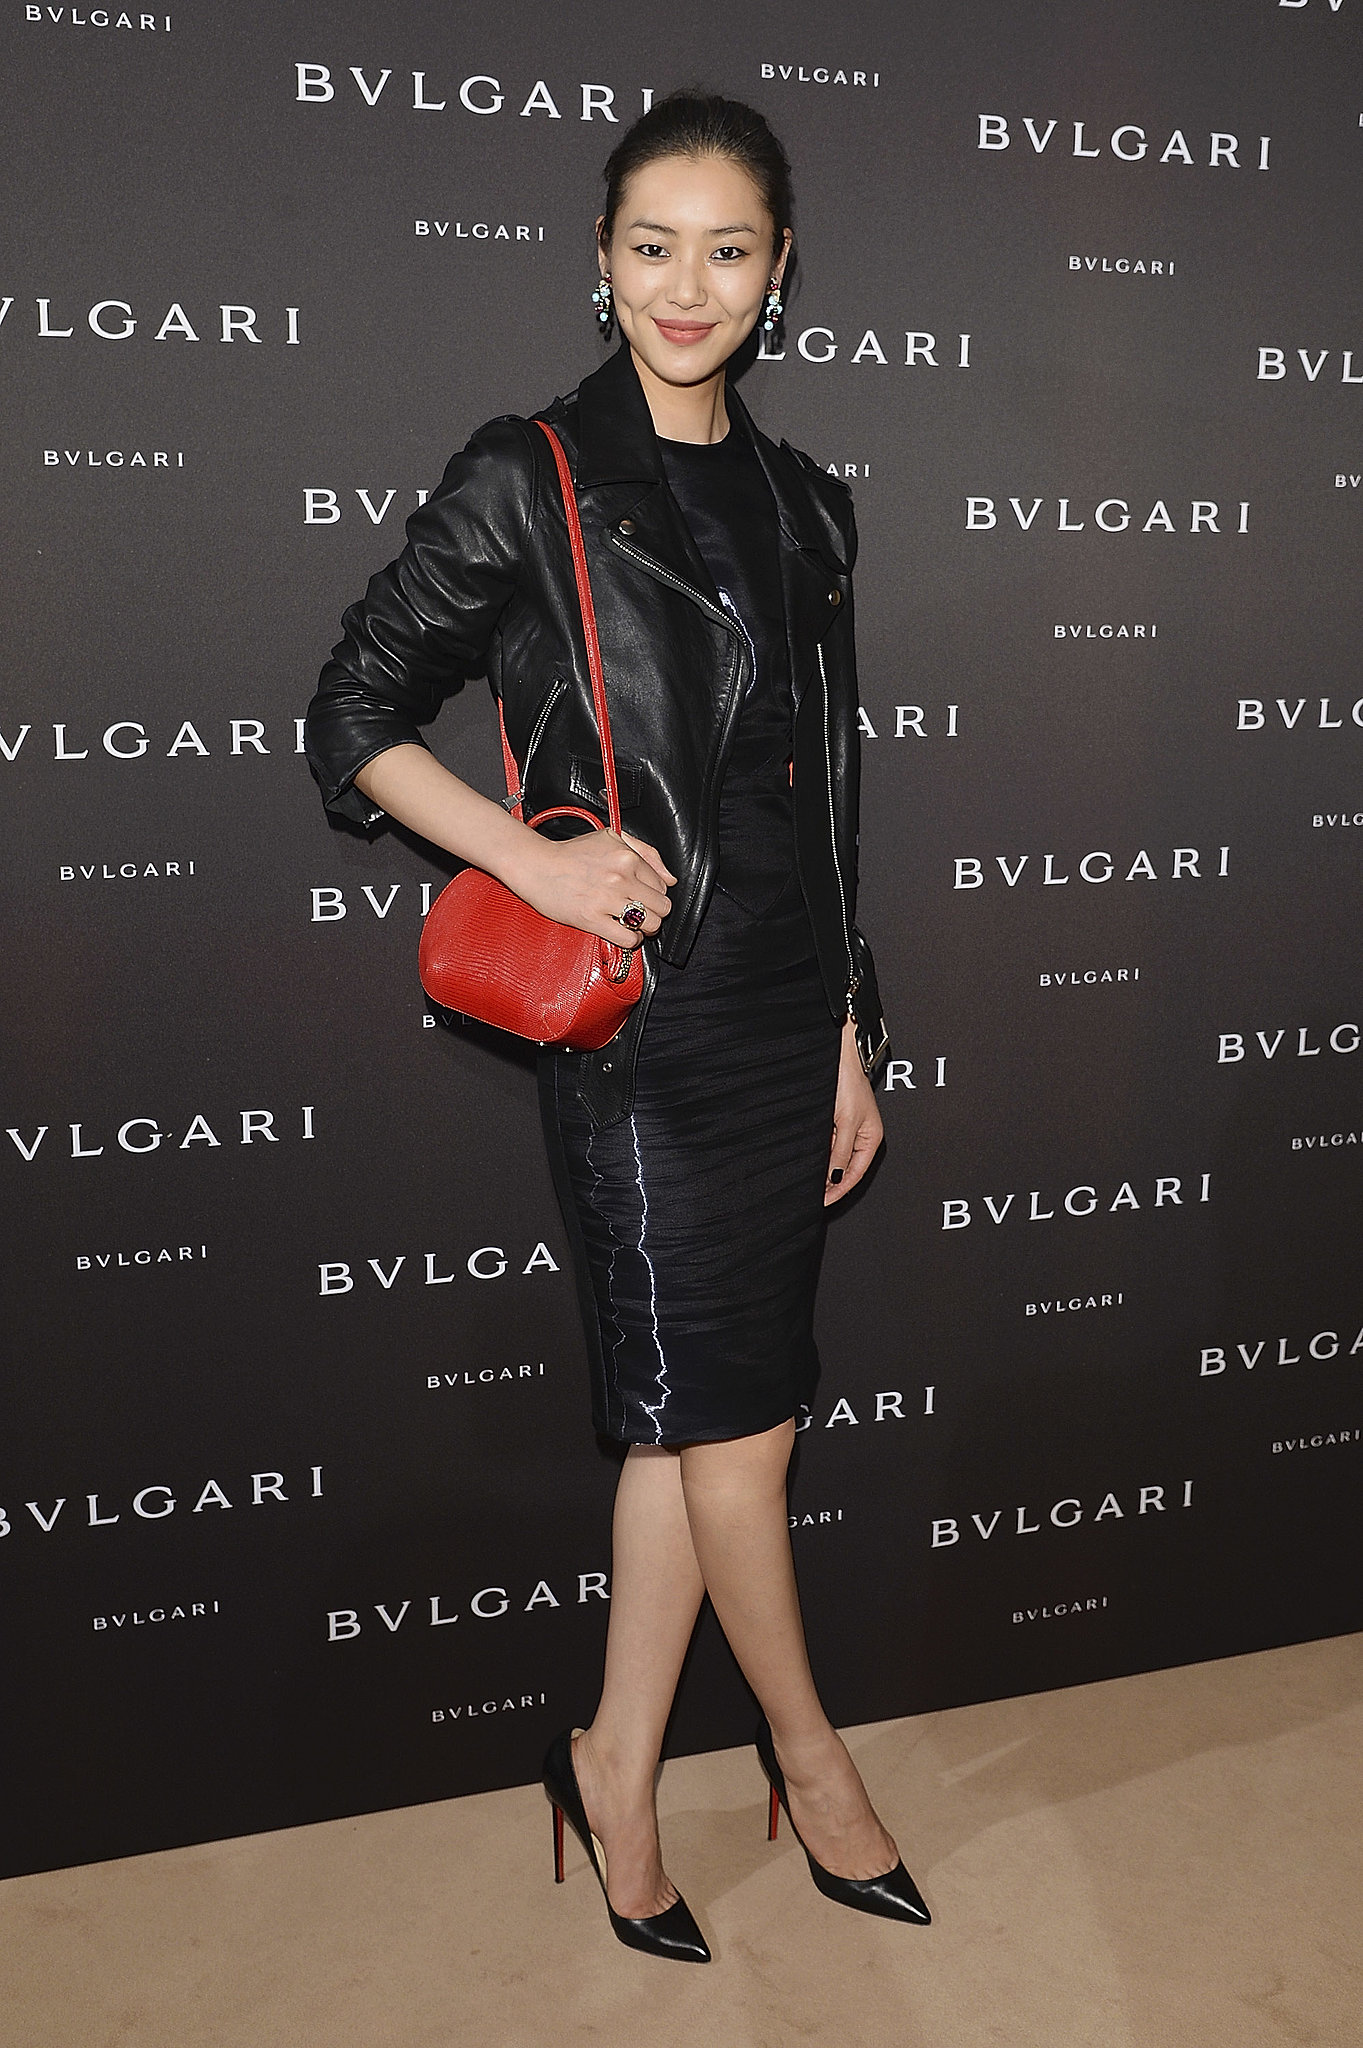 Liu Wen added a pop of red to help unveil Bulgari's latest collection of fine jewelry.